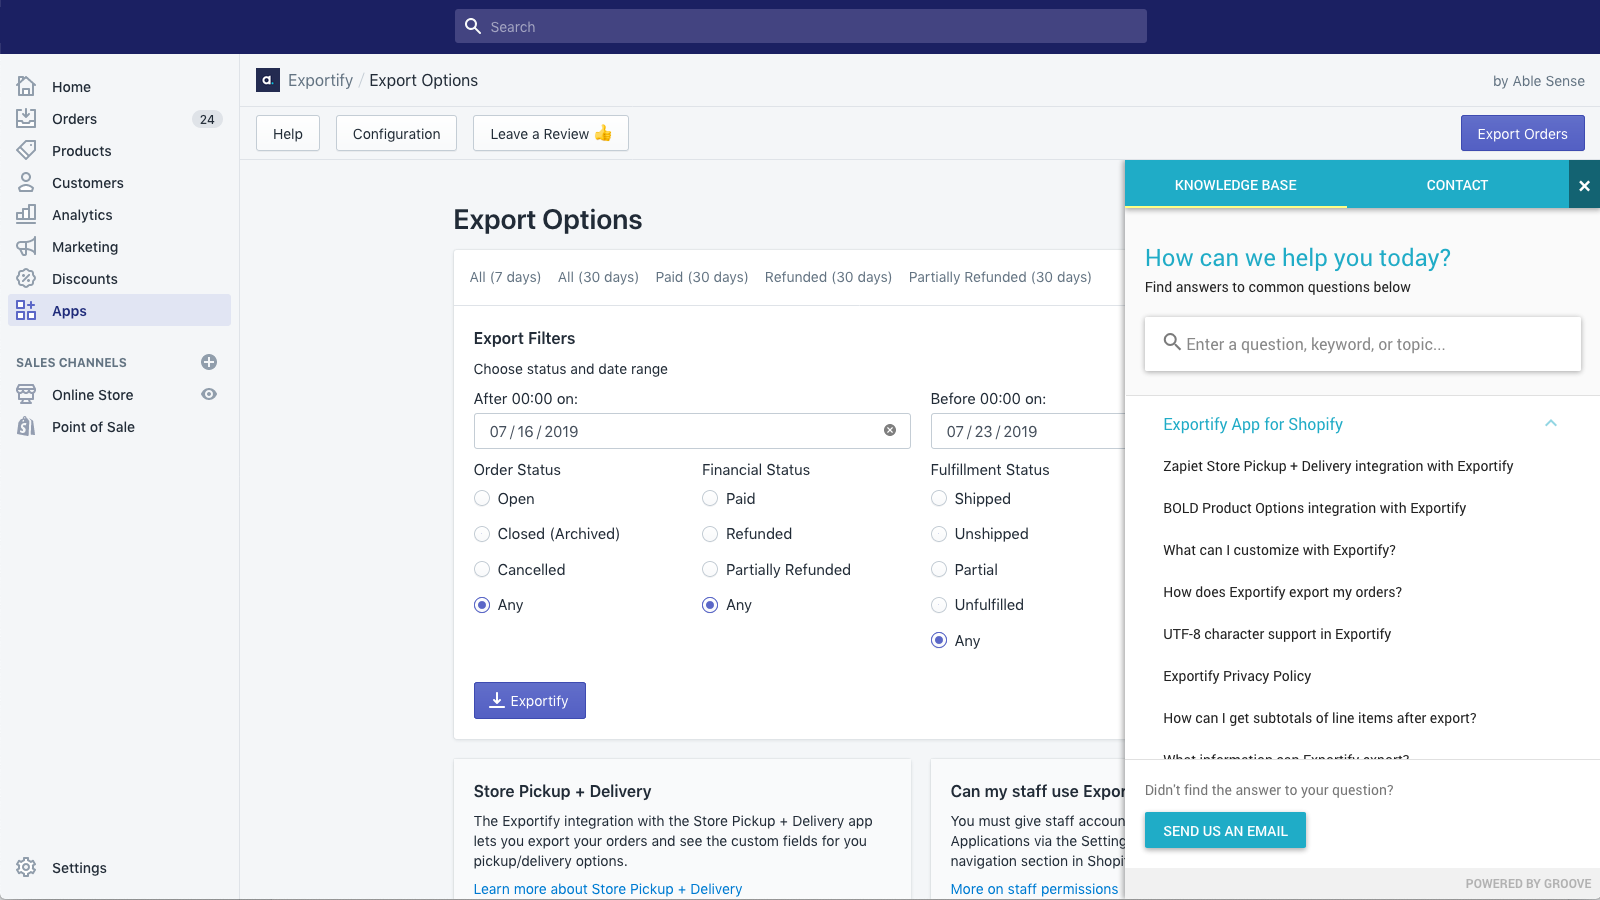 Exportify knowledge base and support is available any time